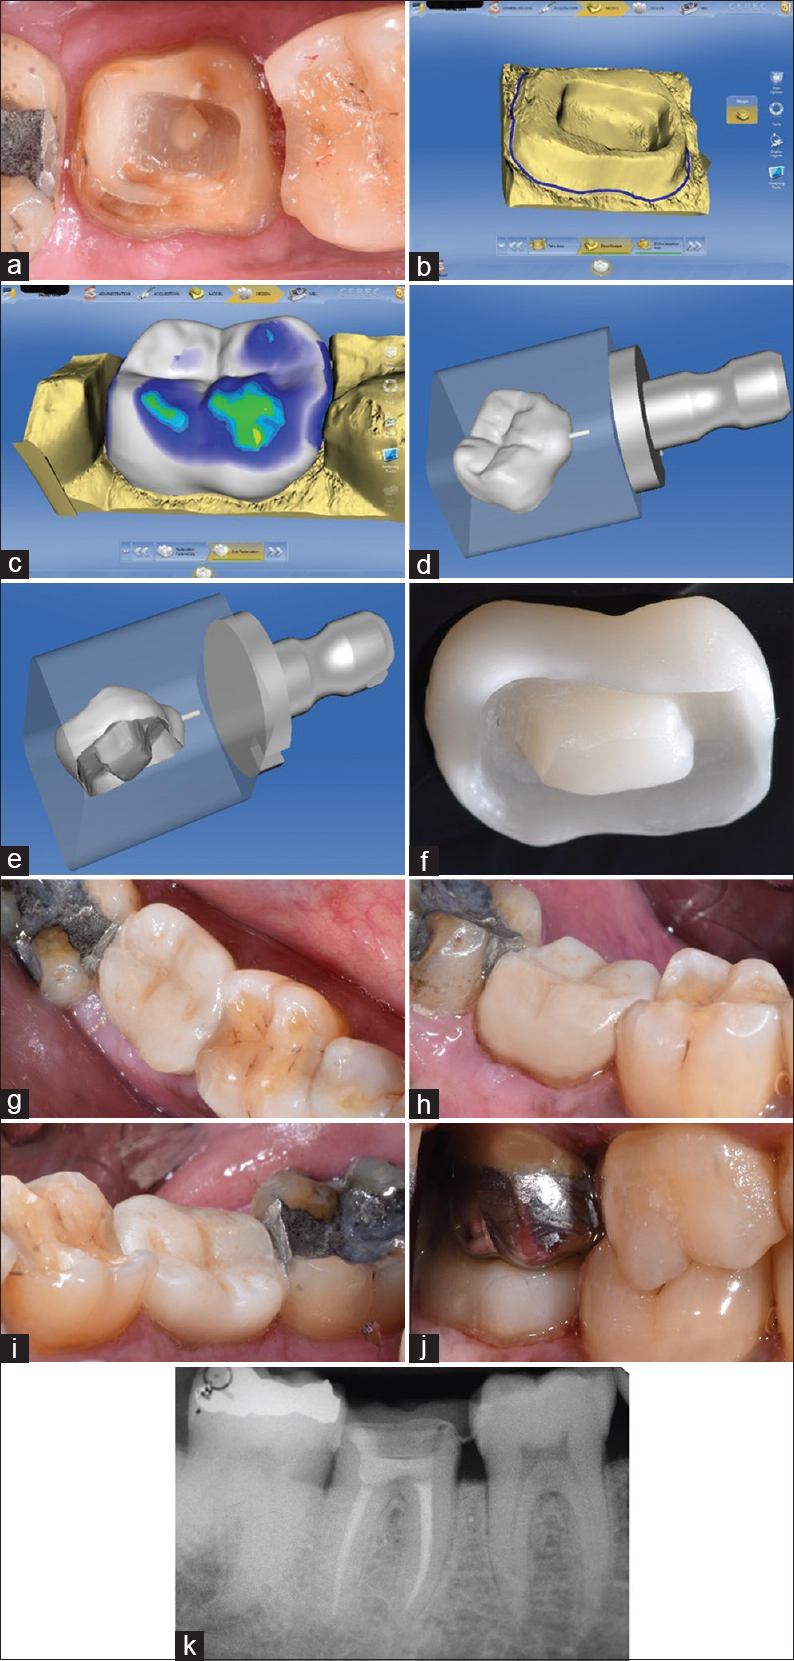 Figure 2: (a) Modified endocrown preparation. (b) Computer.aided design and computer-aided manufacturing outline of the margin, (c) Endocrown designing using the CEREC system. (d) Occlusal view of the premilled endocrown. (e) Pulpal view of the premilled endocrown. (f) Postmilling endocrown. (g) Occlusal view conforming to the anatomy of the tooth 47. (h) Buccal view showing good marginal adaptation. (i) Lingual view showing the satisfactory clinical crown height. (j) Endocrown in occlusion with the upper metal crown of tooth 17. (k) Postoperative radiograph of tooth 47